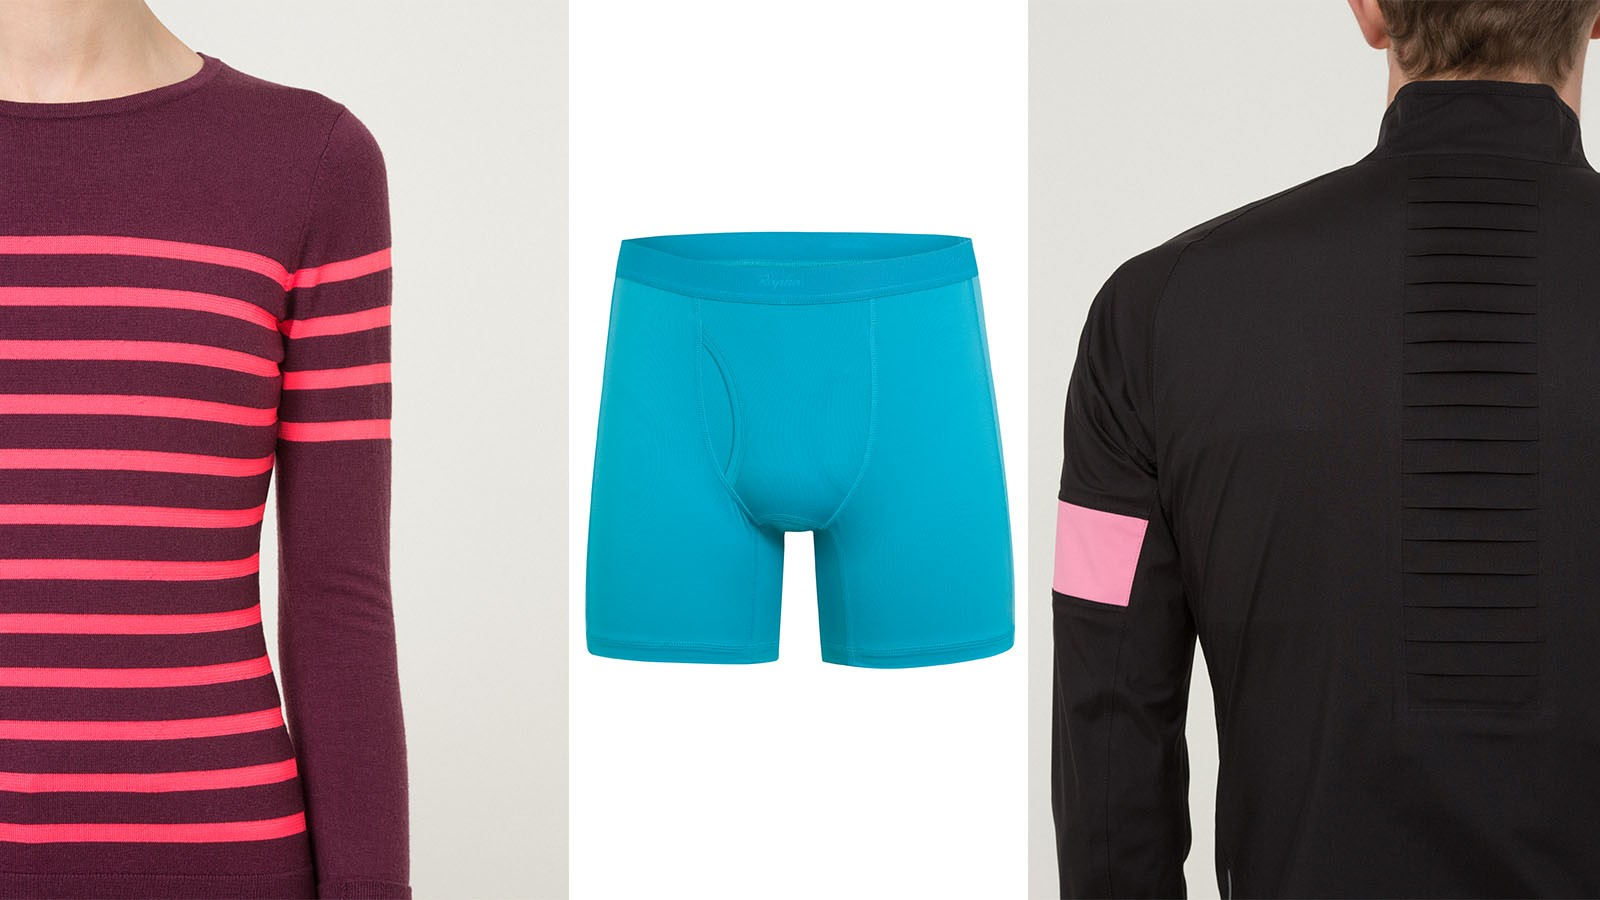 Part of Rapha's look for 2017